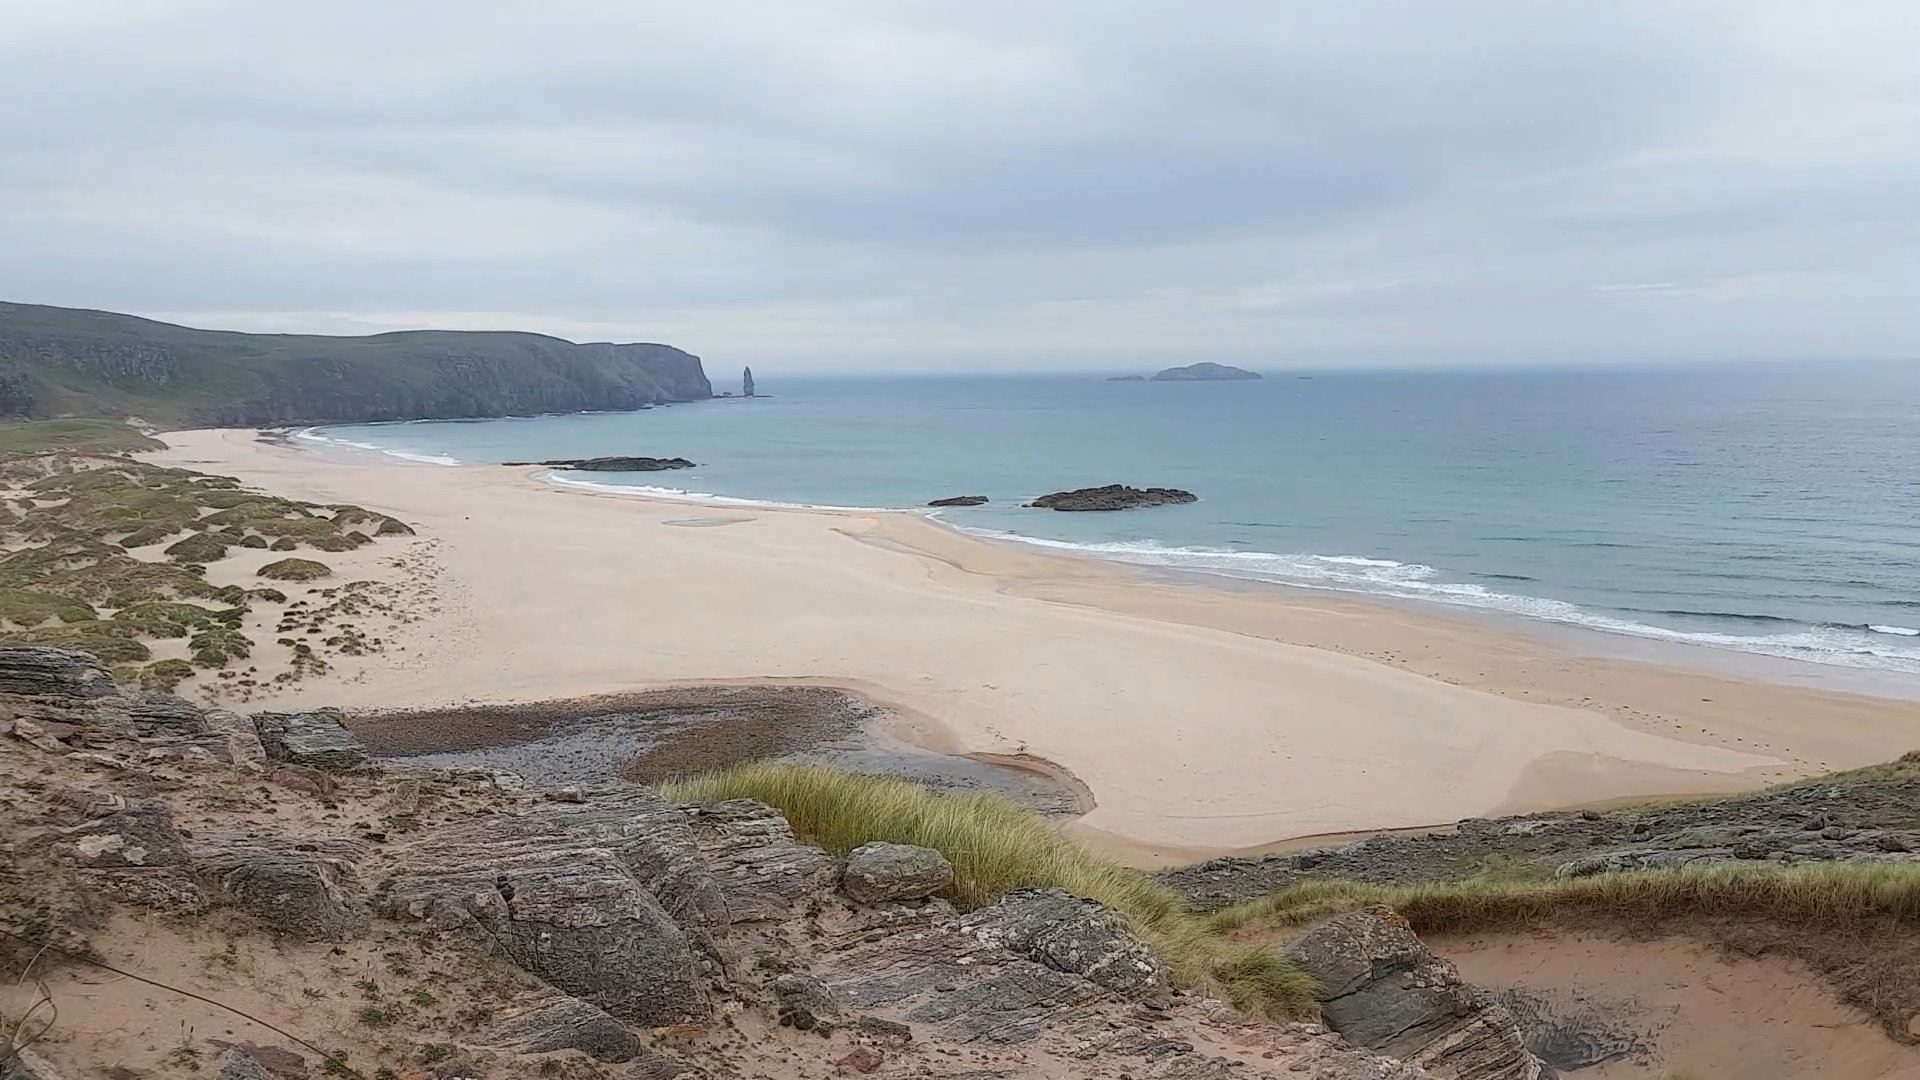 A view of Sandwood Bay from the hills at the northern end